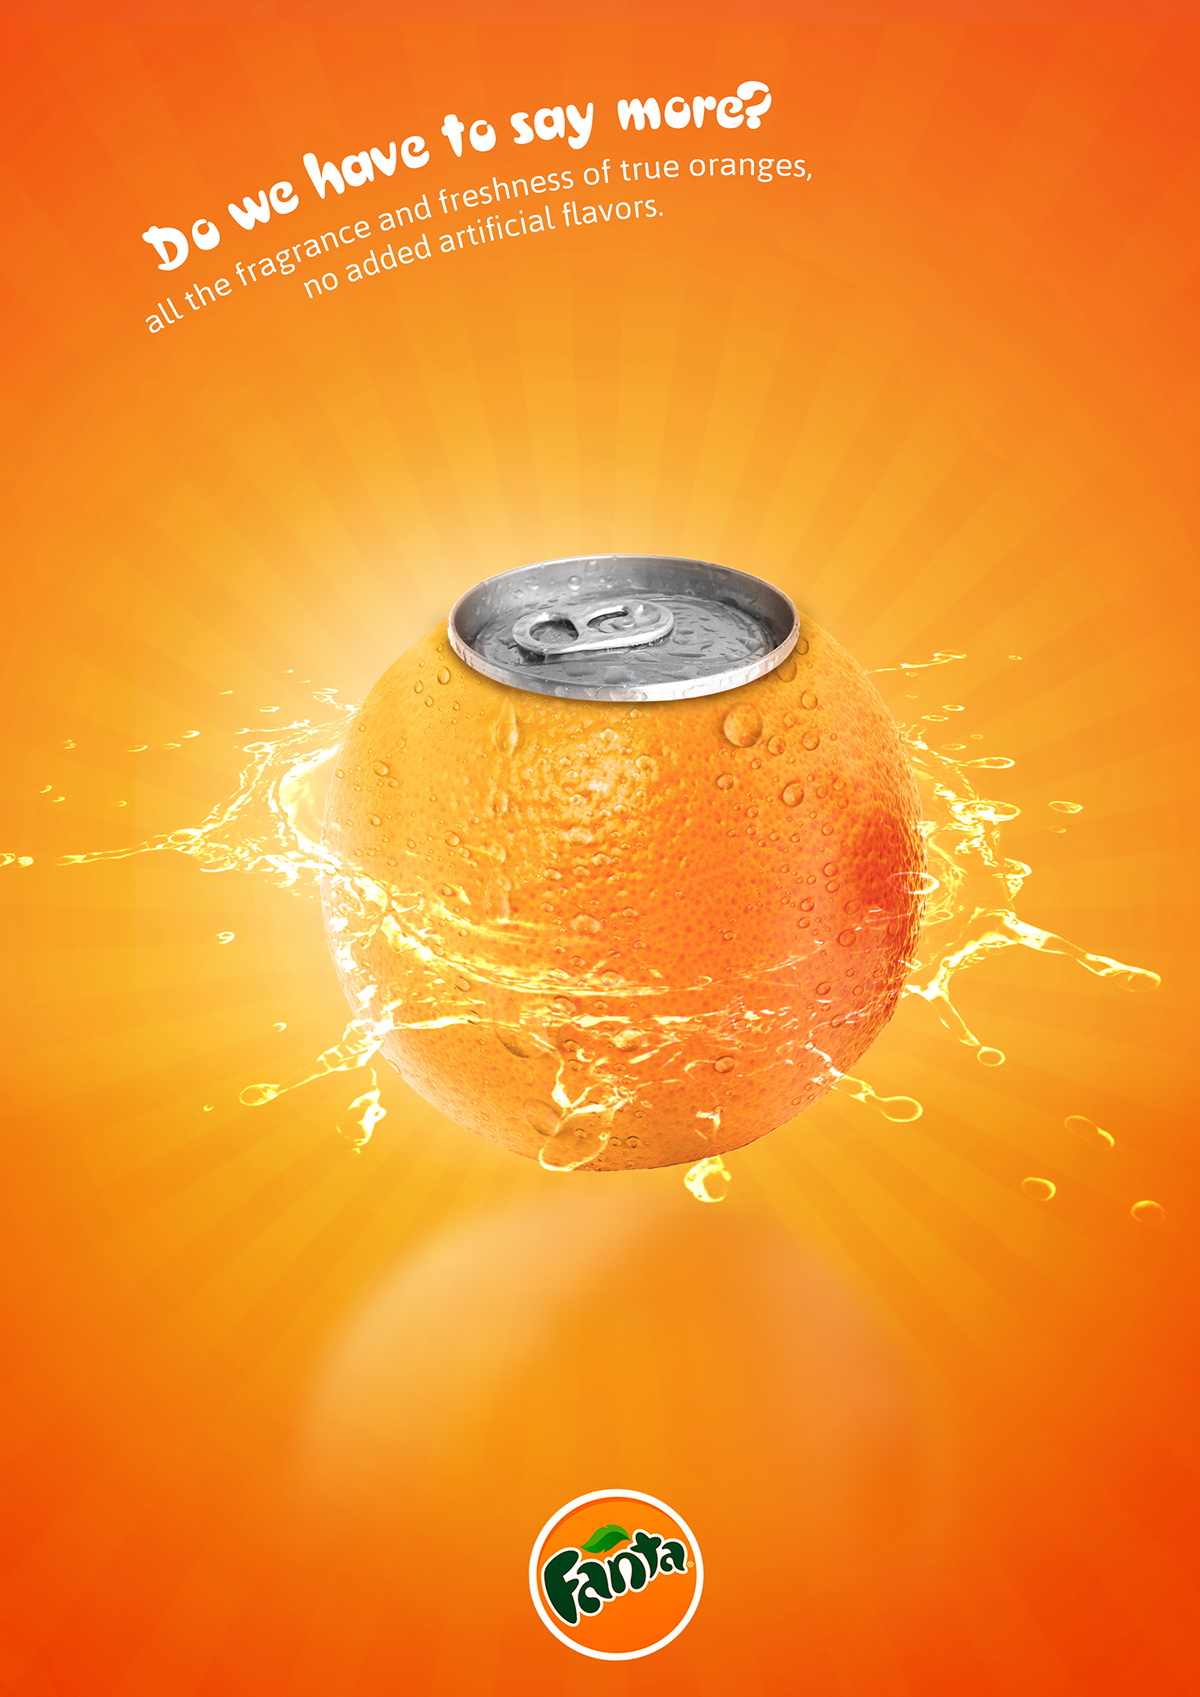 Fanta Print Ads On Pantone Canvas Gallery